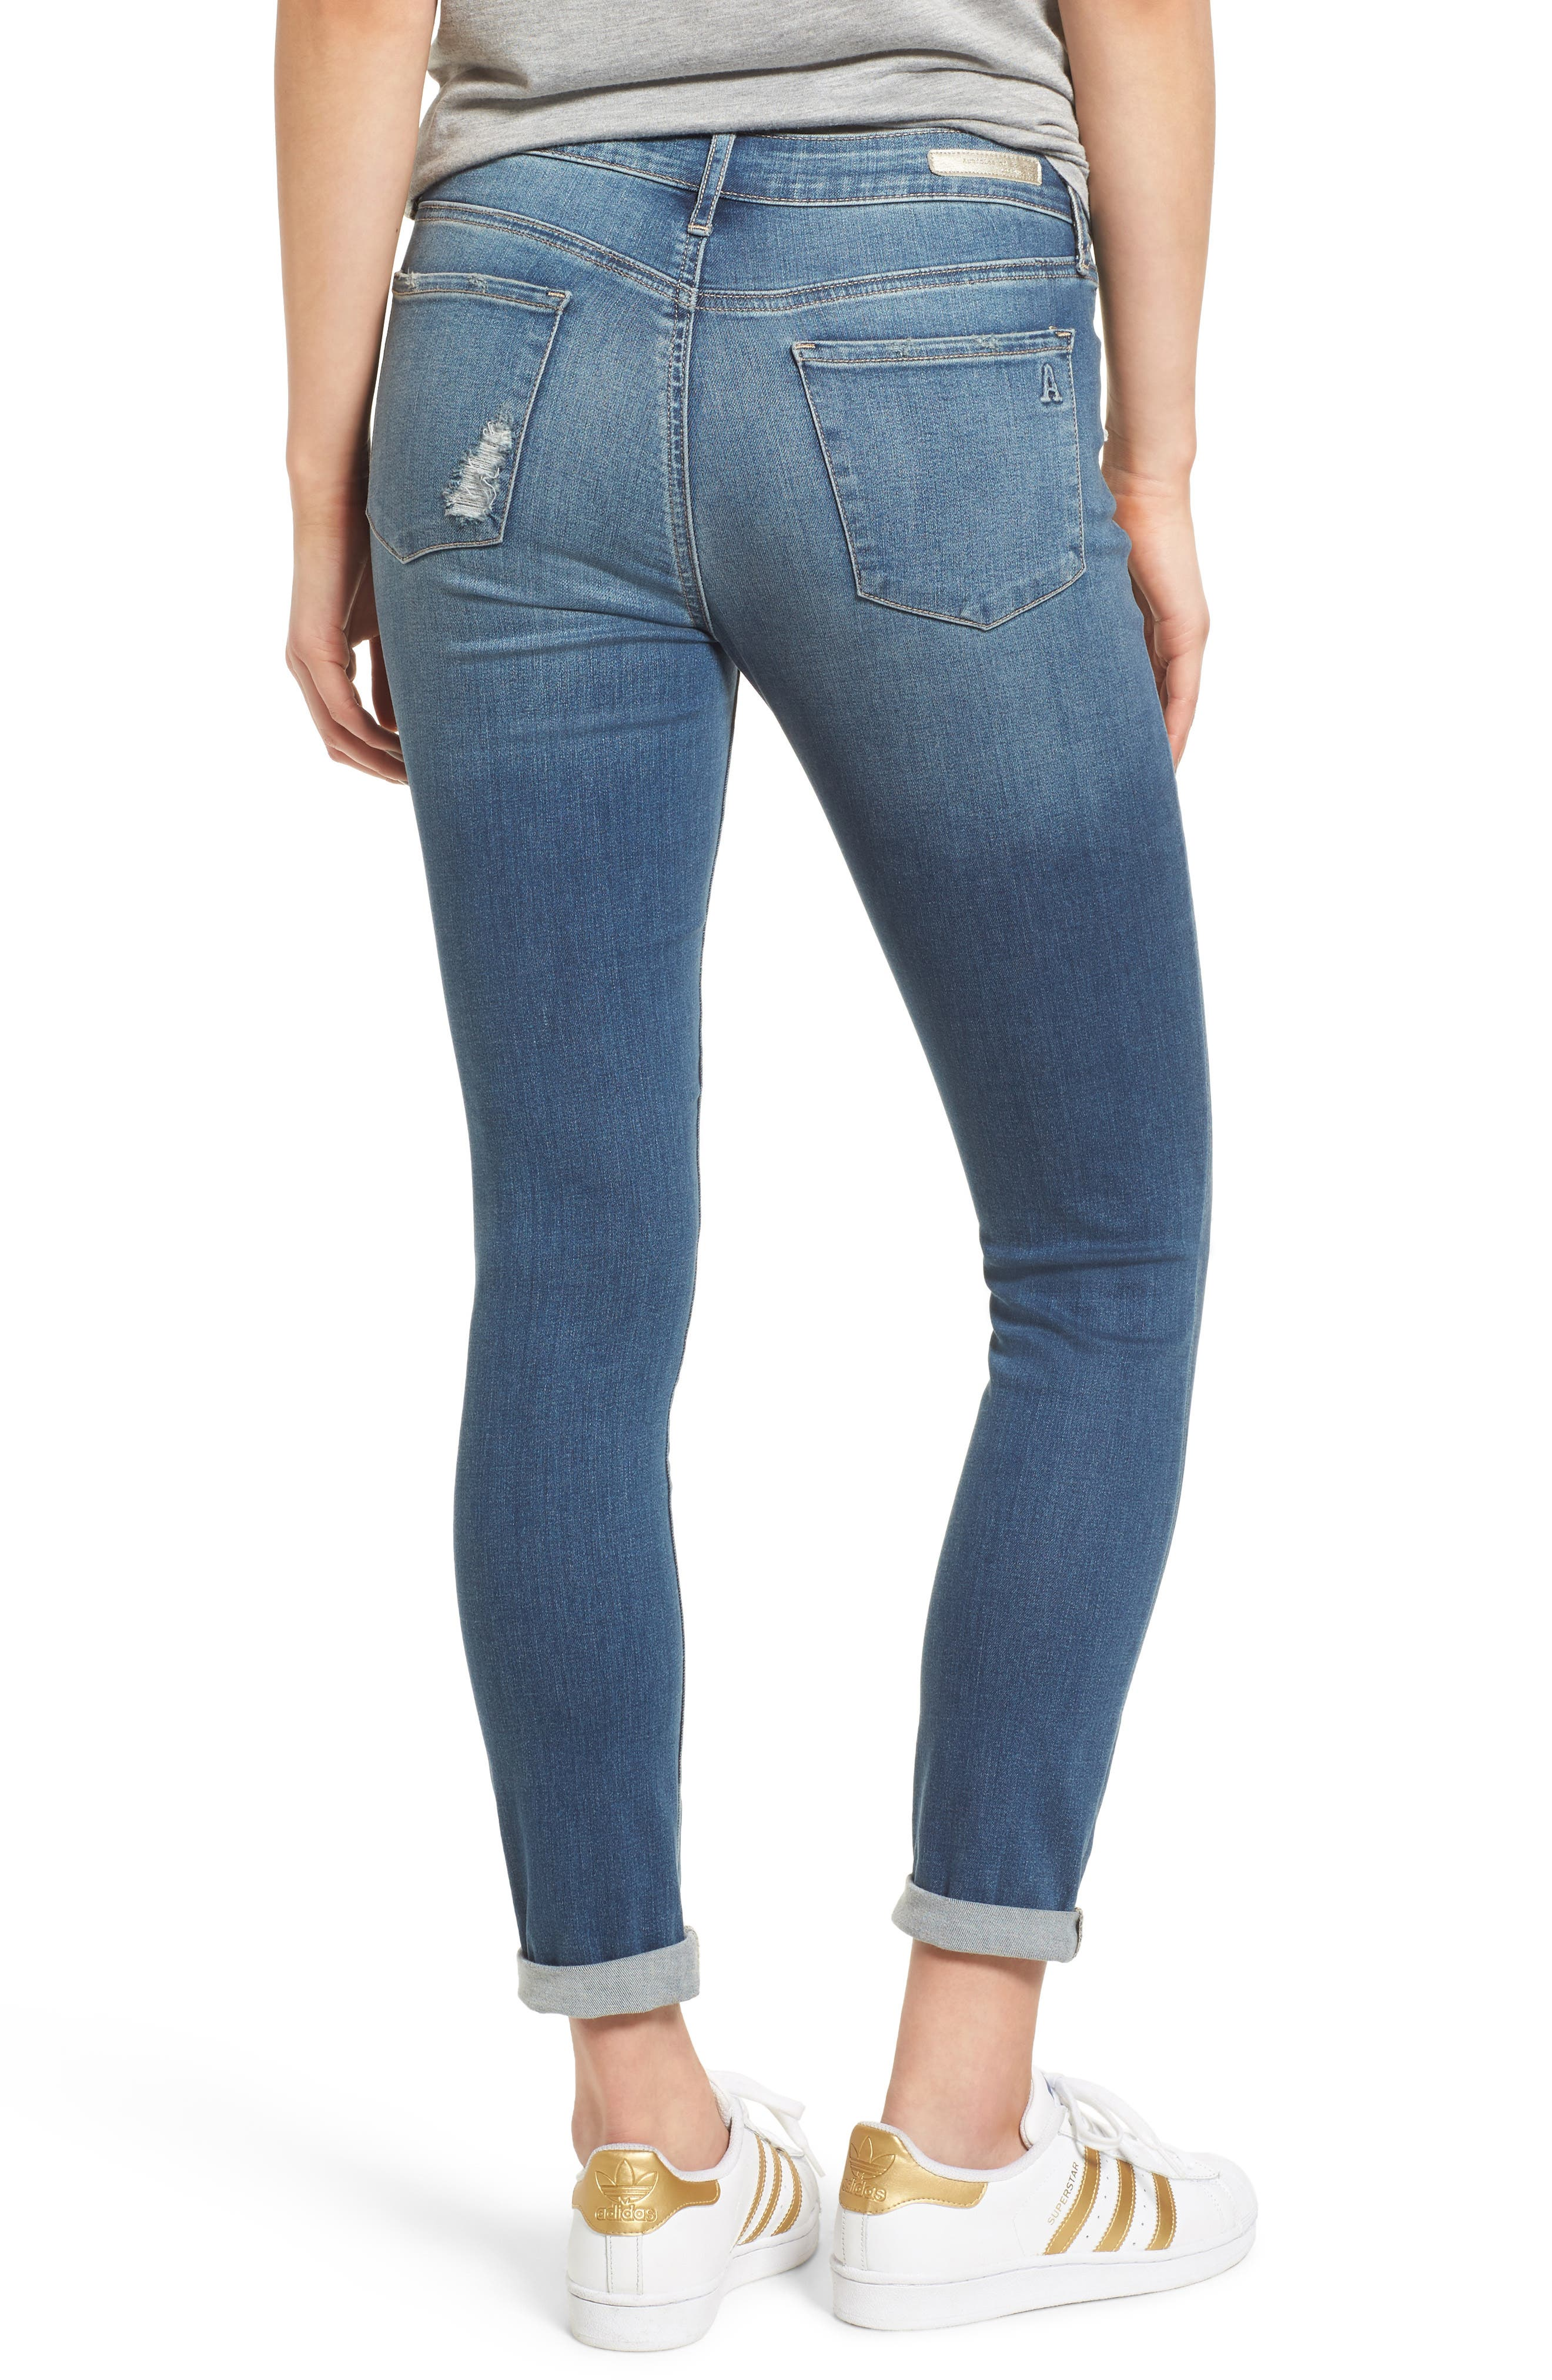 ARTICLES OF SOCIETY, Karen Ripped Crop Skinny Jeans, Alternate thumbnail 2, color, 400